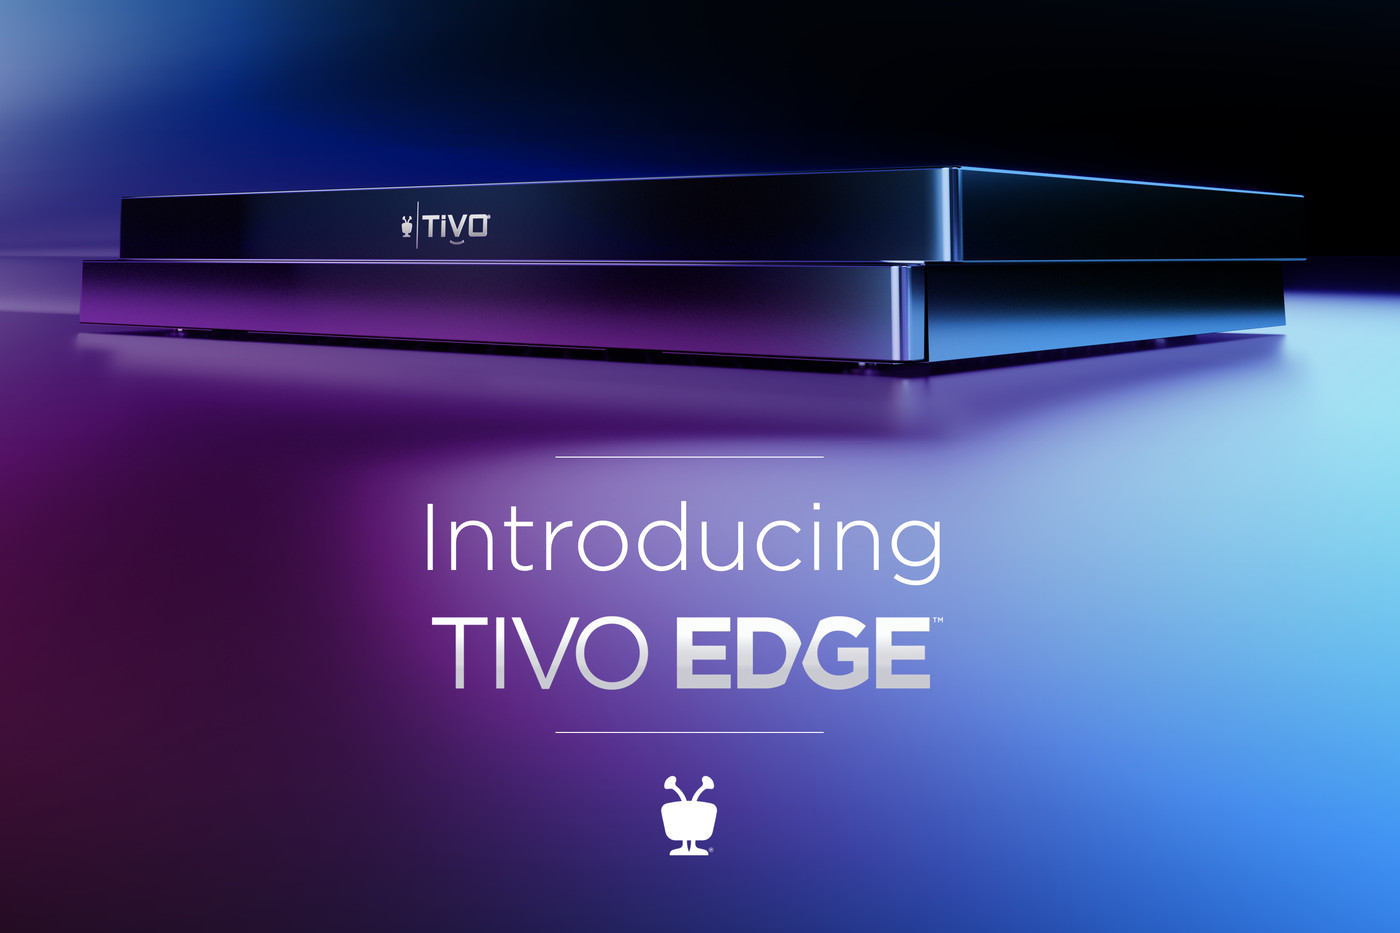 TiVo Announces New Edge DVR, TiVo Plus Service